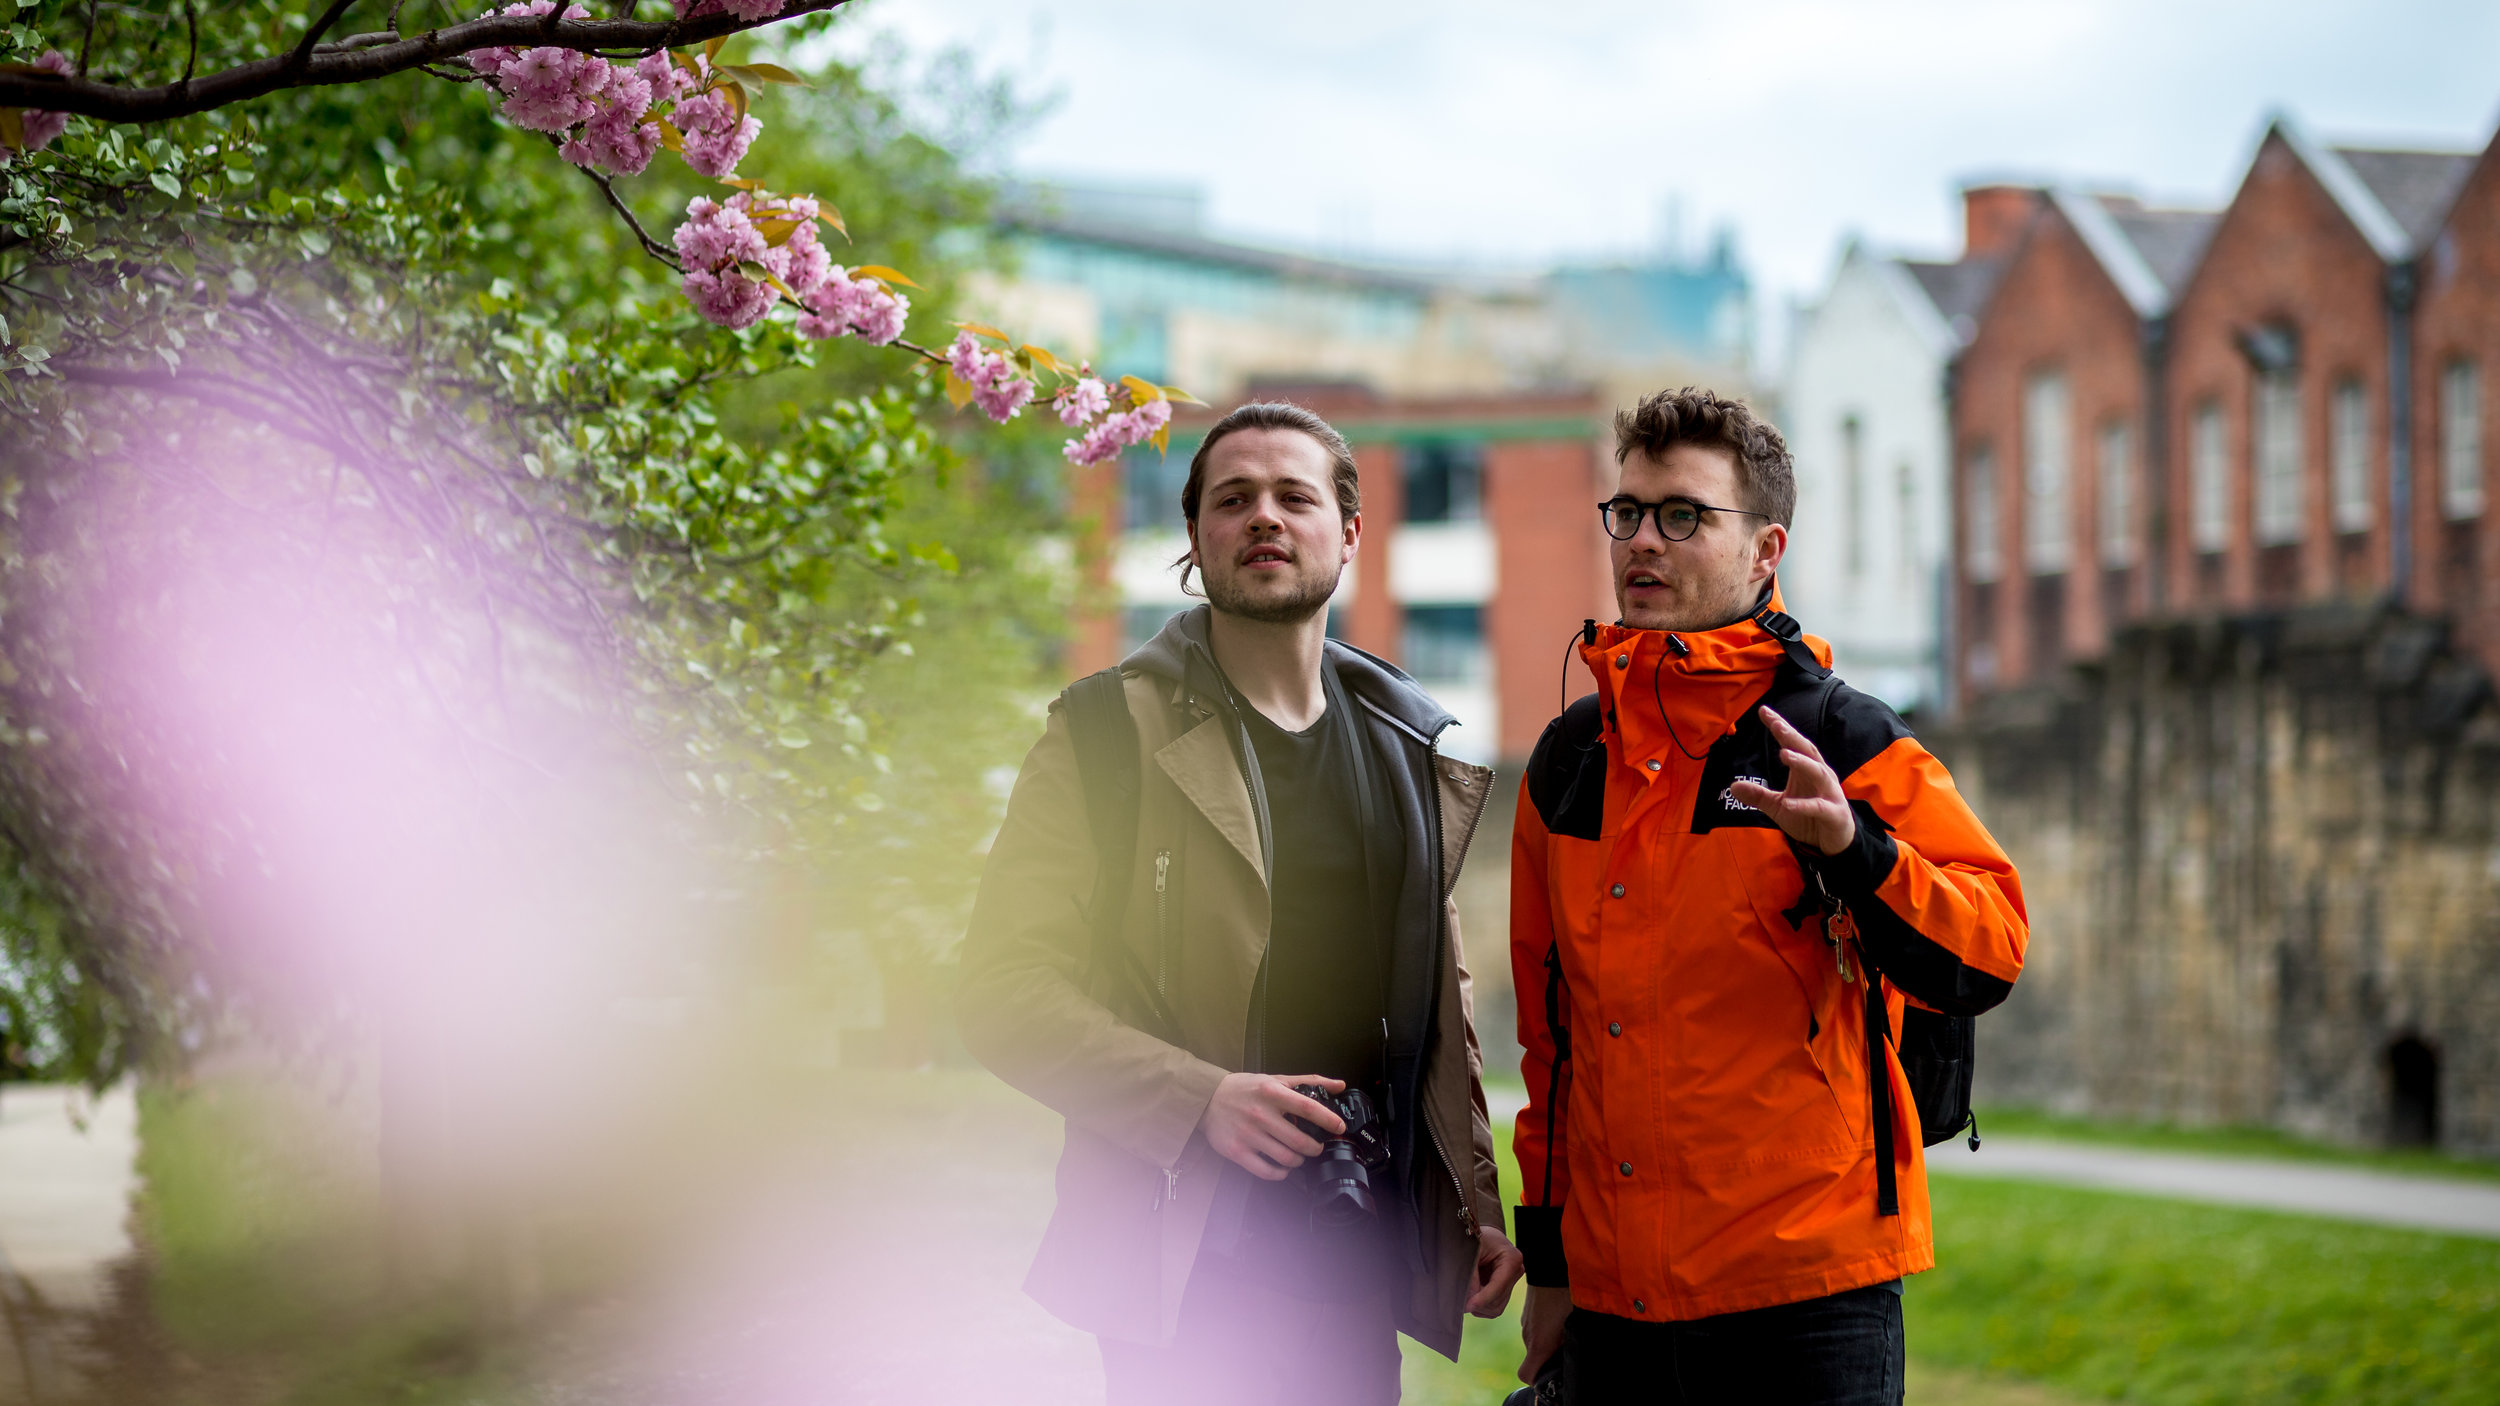 Harry and Dan discussing the finer aspects of pink tree blossom.